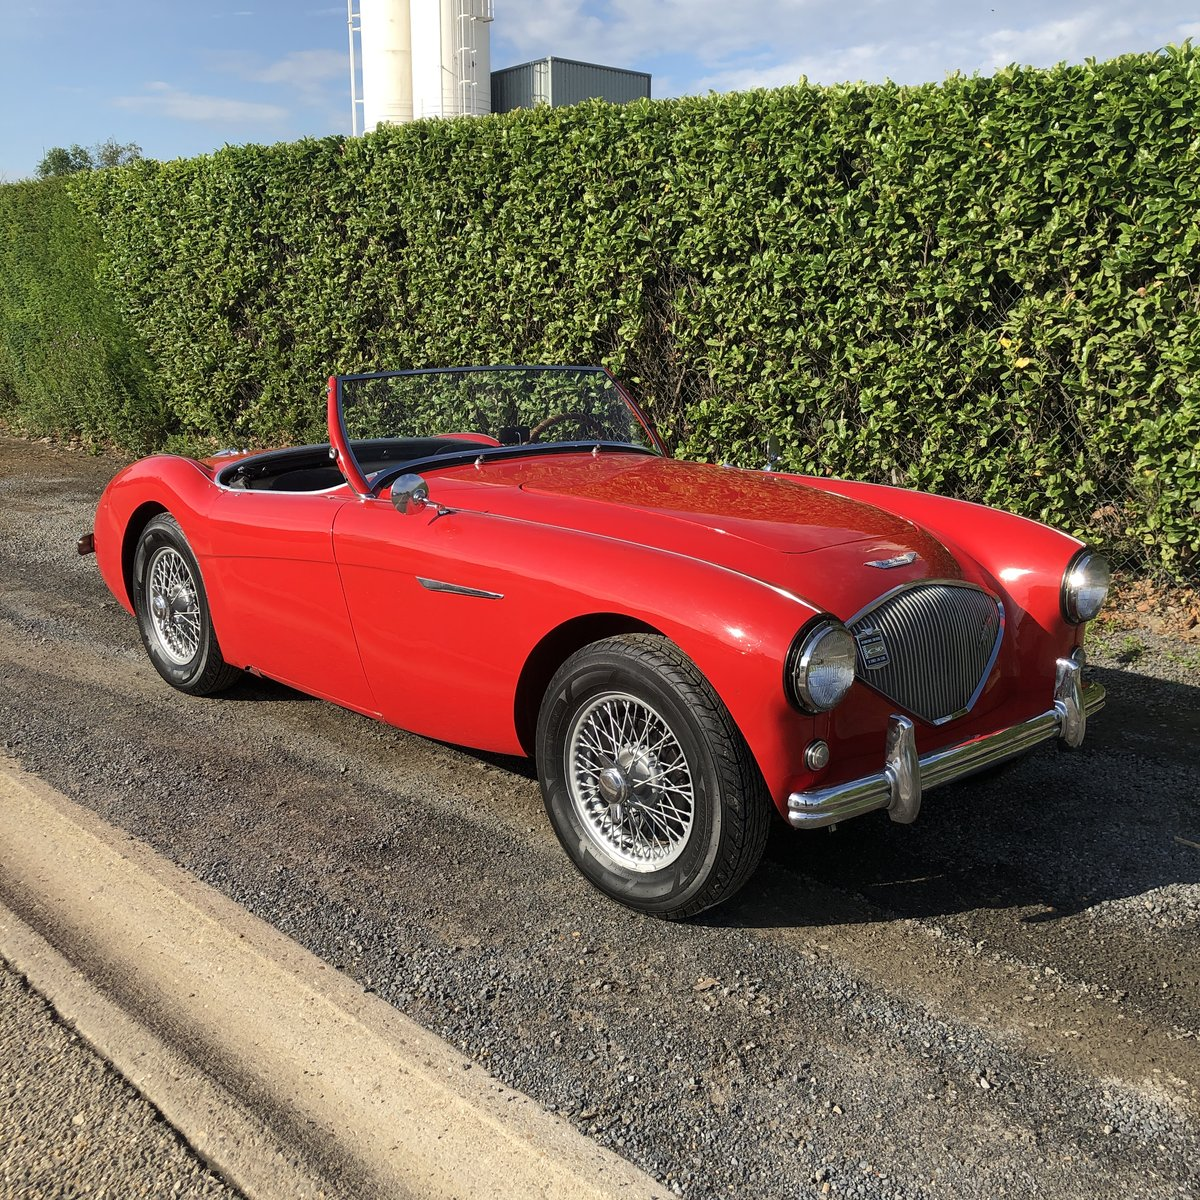 1955 Austin Healey 100/4 BN2 LHD For Sale (picture 1 of 6)